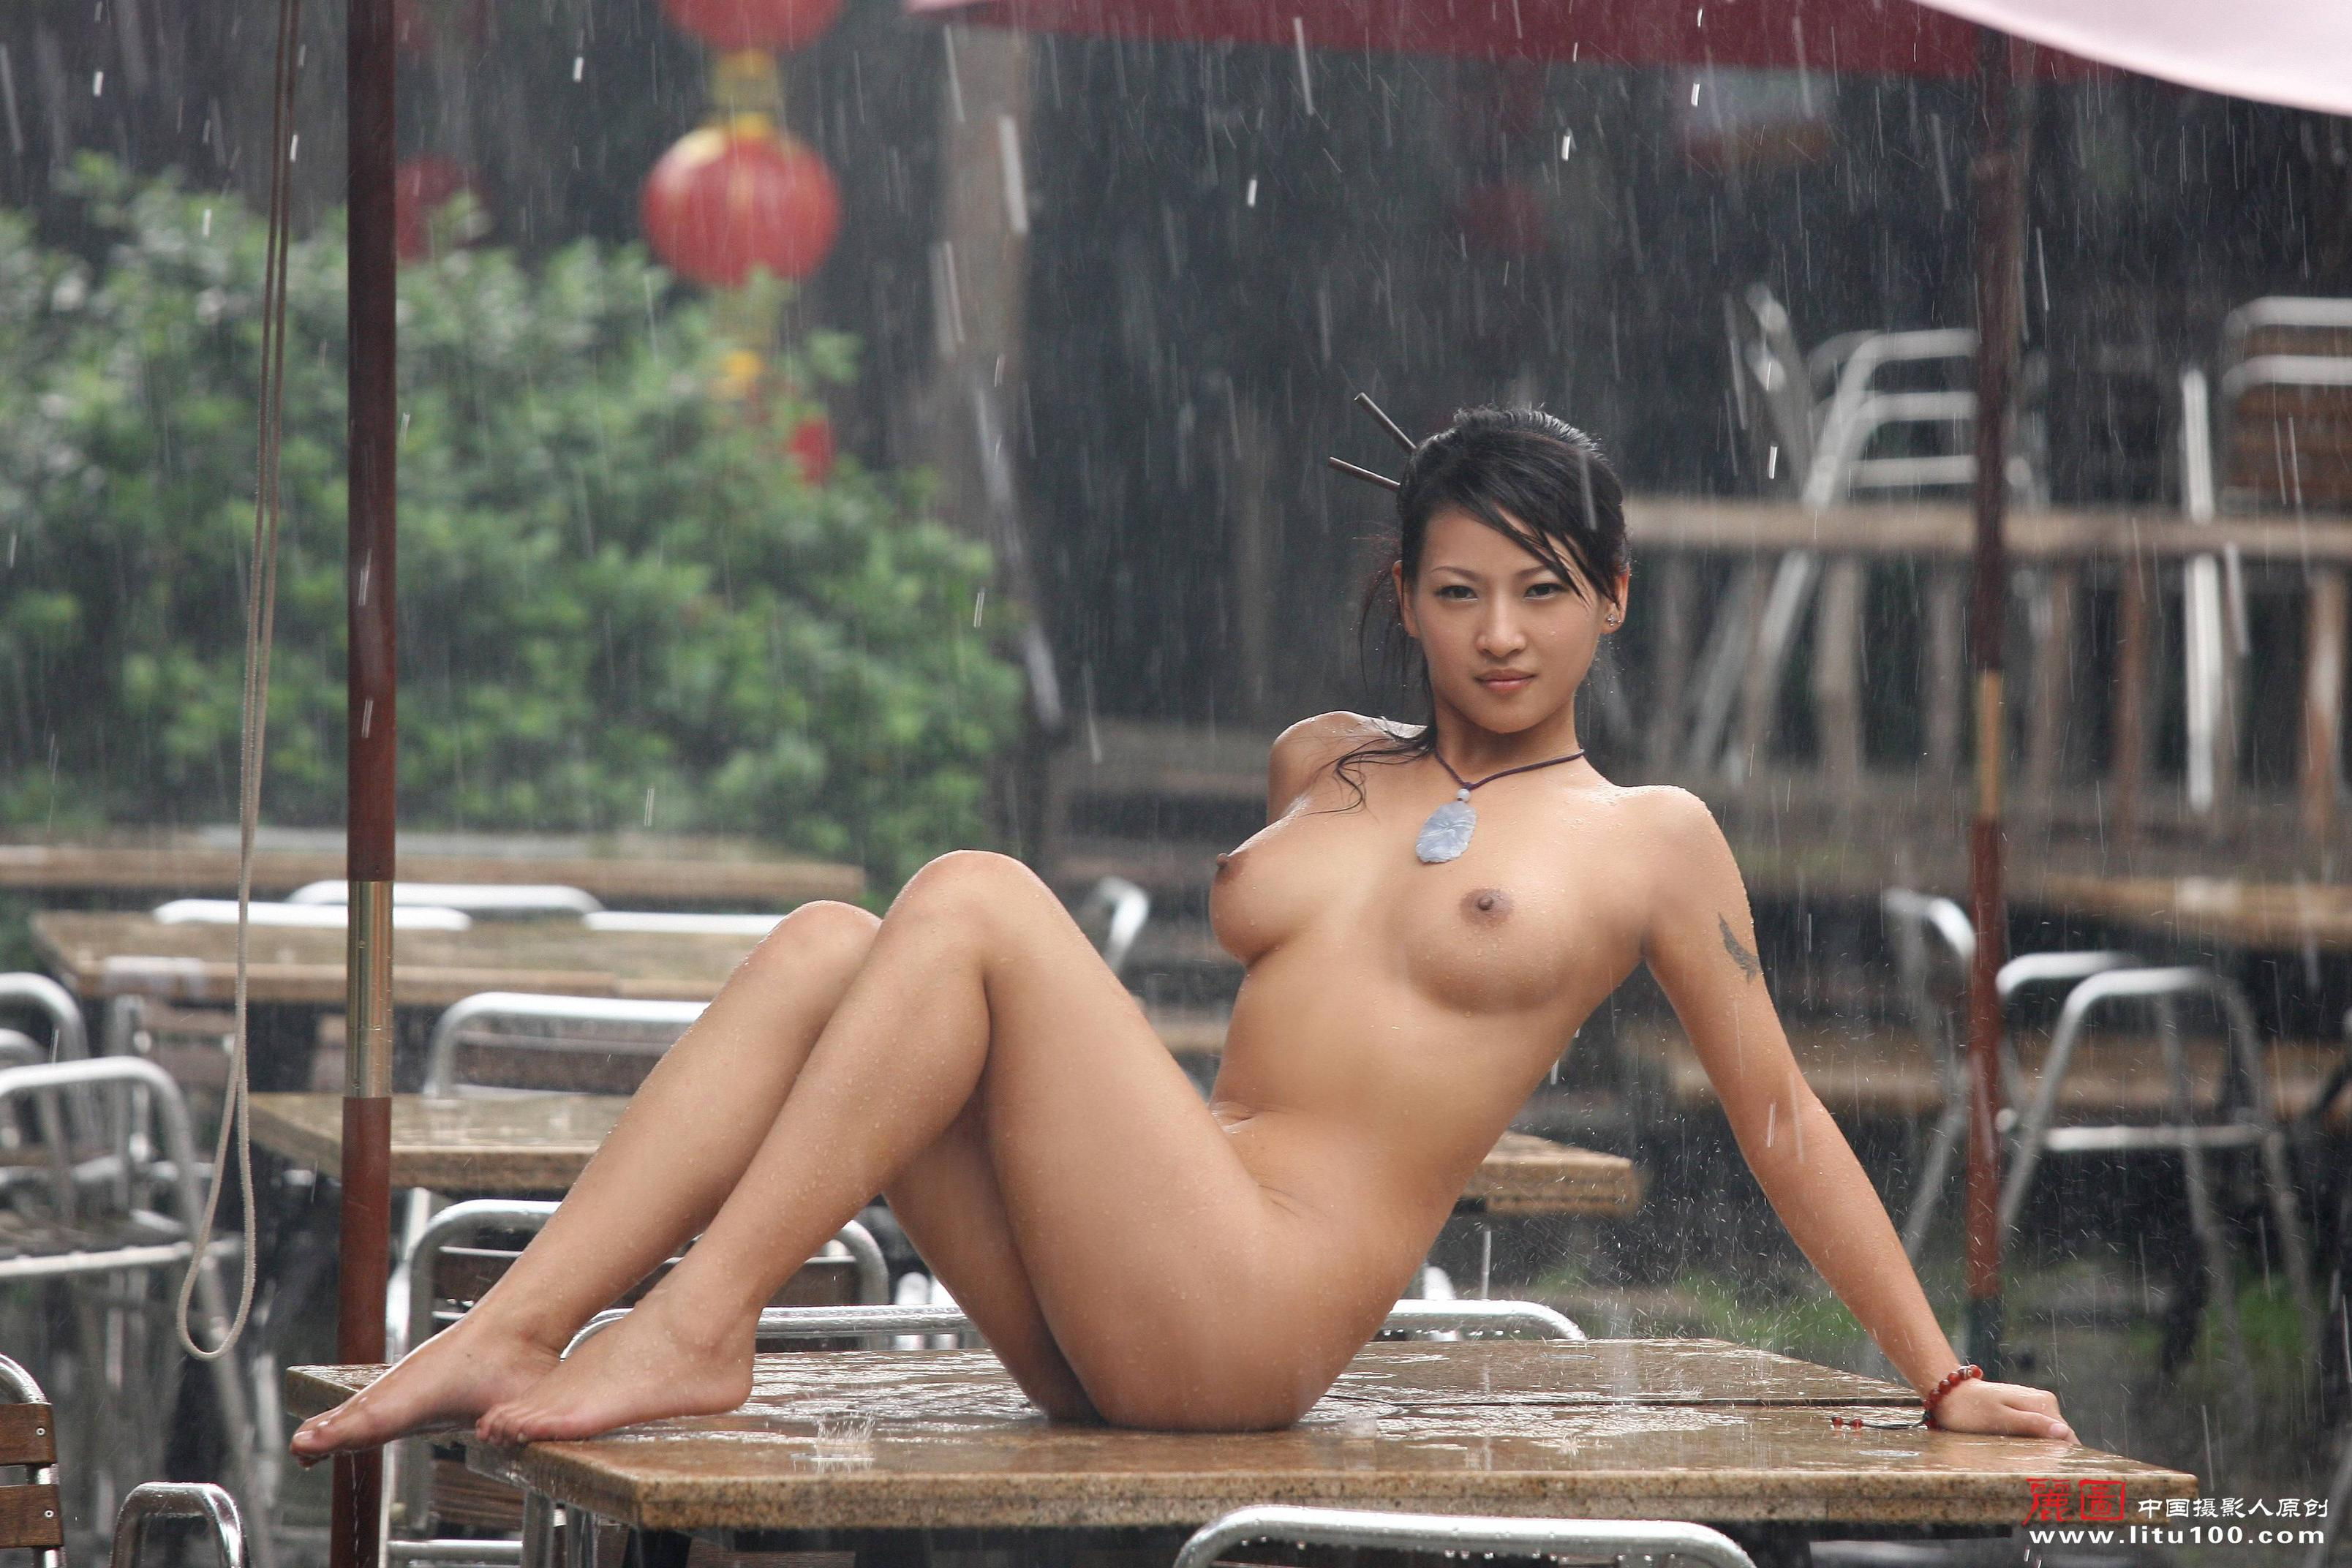 nude-rainy-video-of-monalisa-salt-n-pepa-talk-about-sex